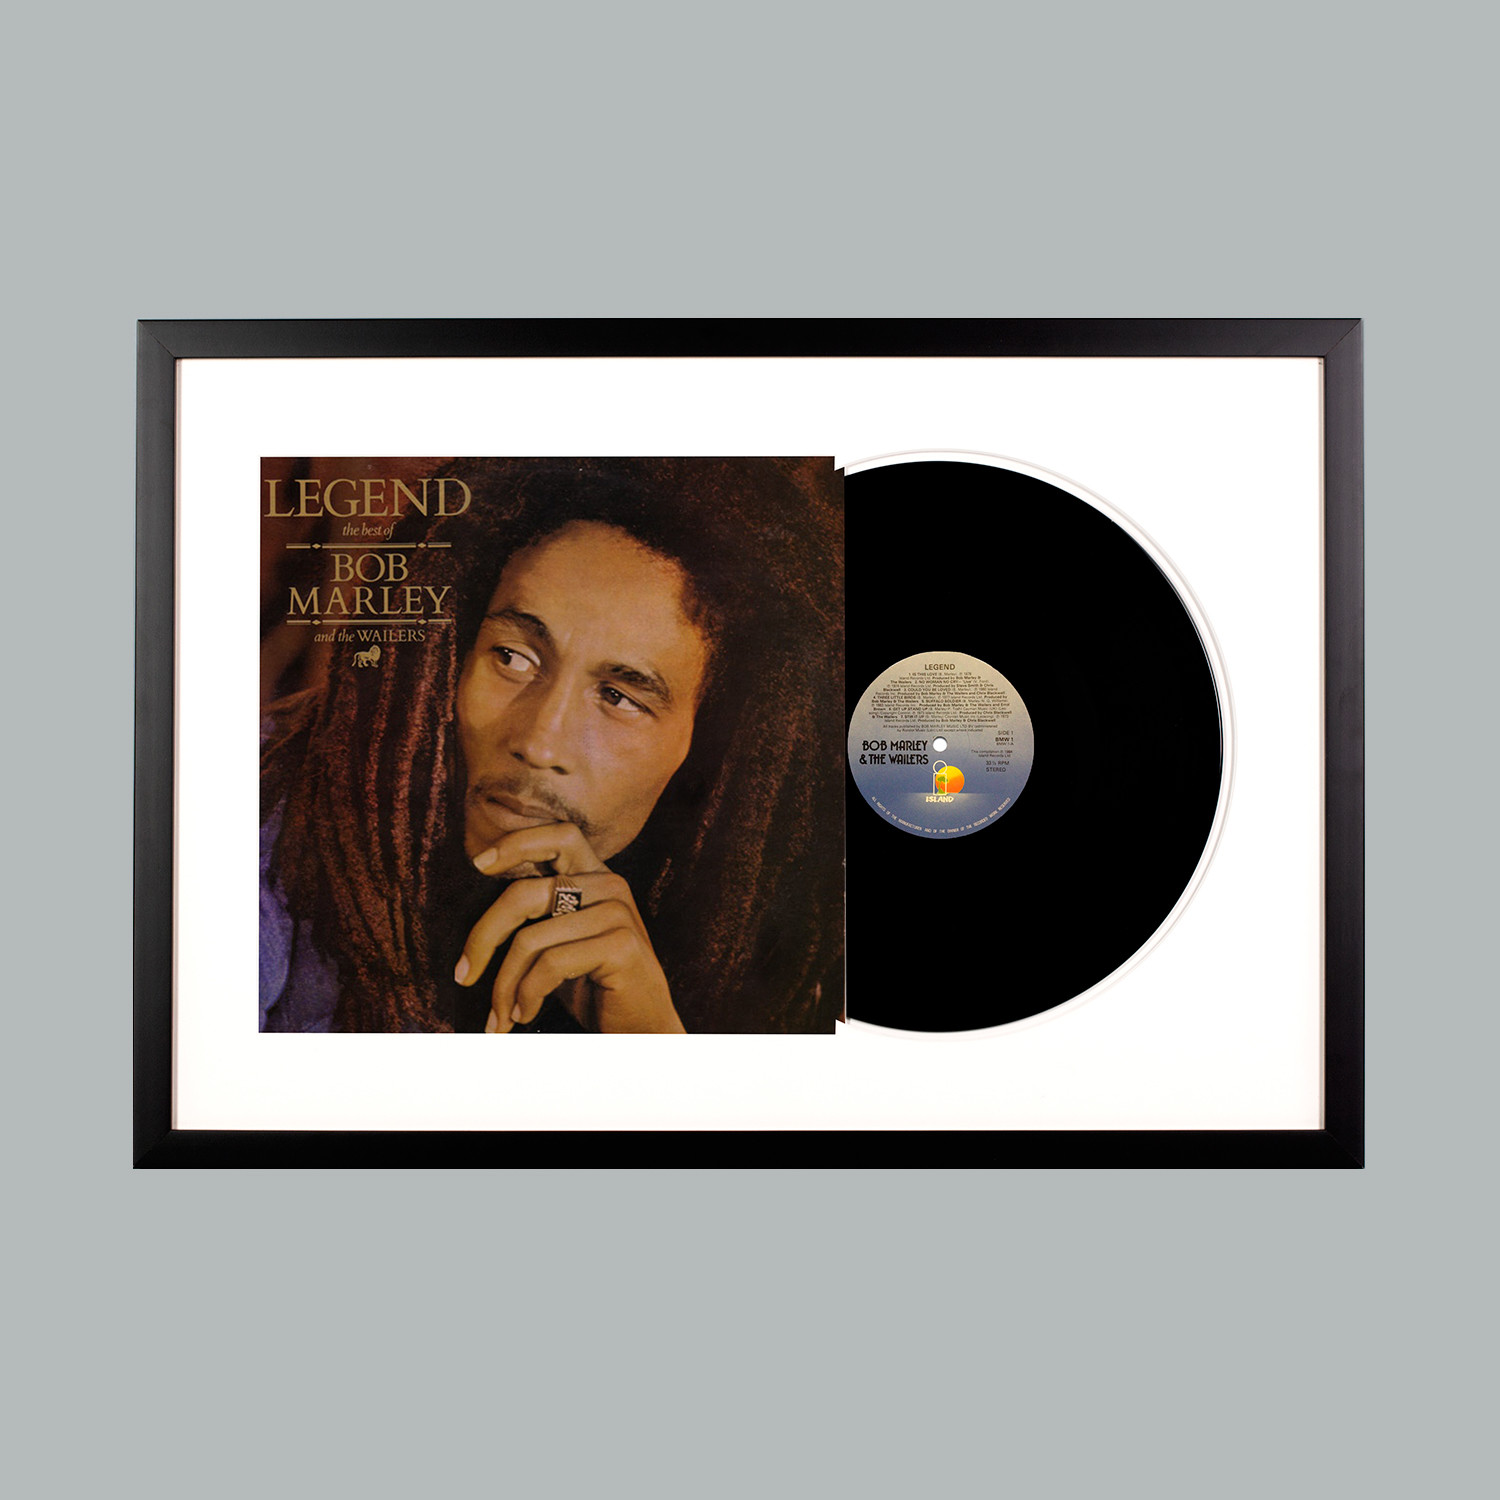 Bob marley legend white frame level frames touch of modern bob marley legend white frame altavistaventures